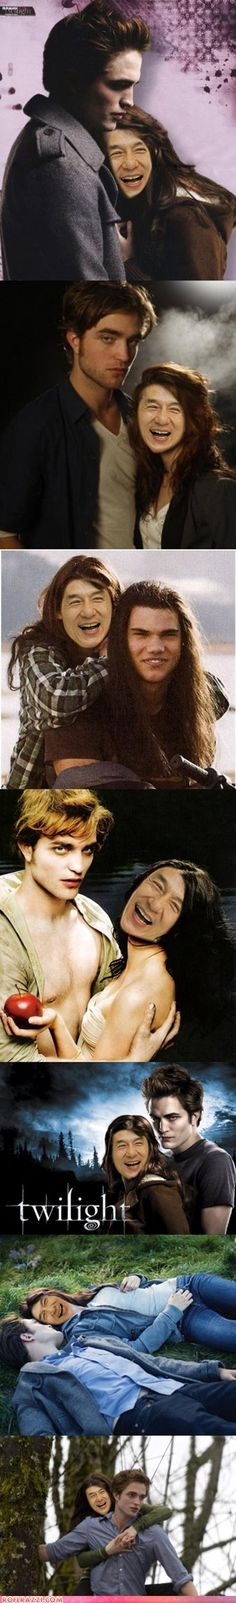 Jackie Chan just saved Twilight. I'm crying from laughing so hard!